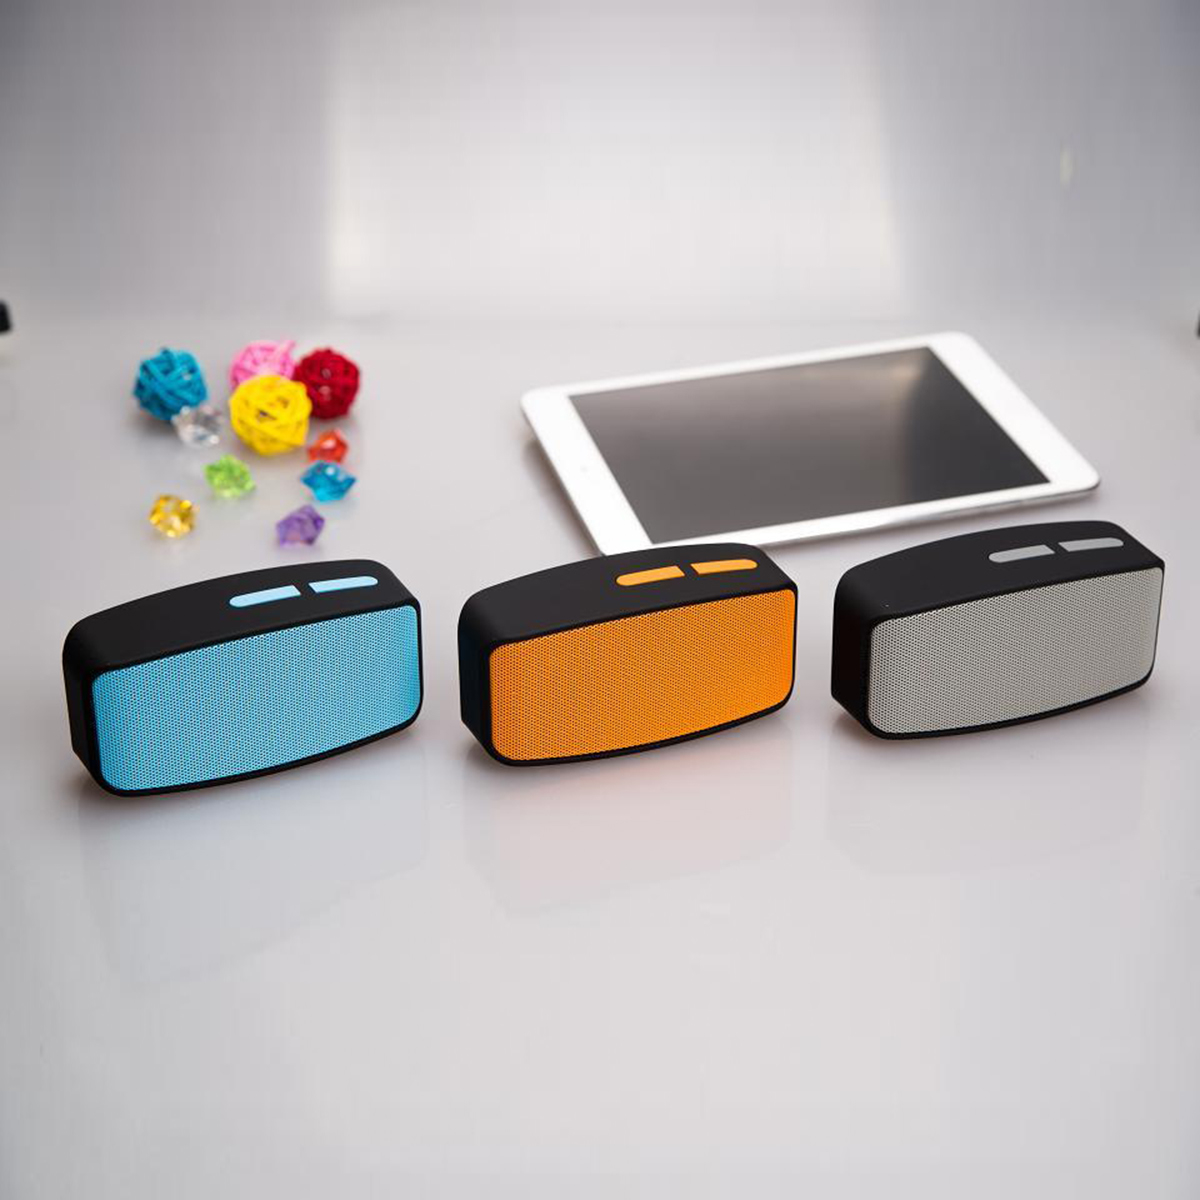 Easy Listener Bluetooth Speaker and MP3 Player